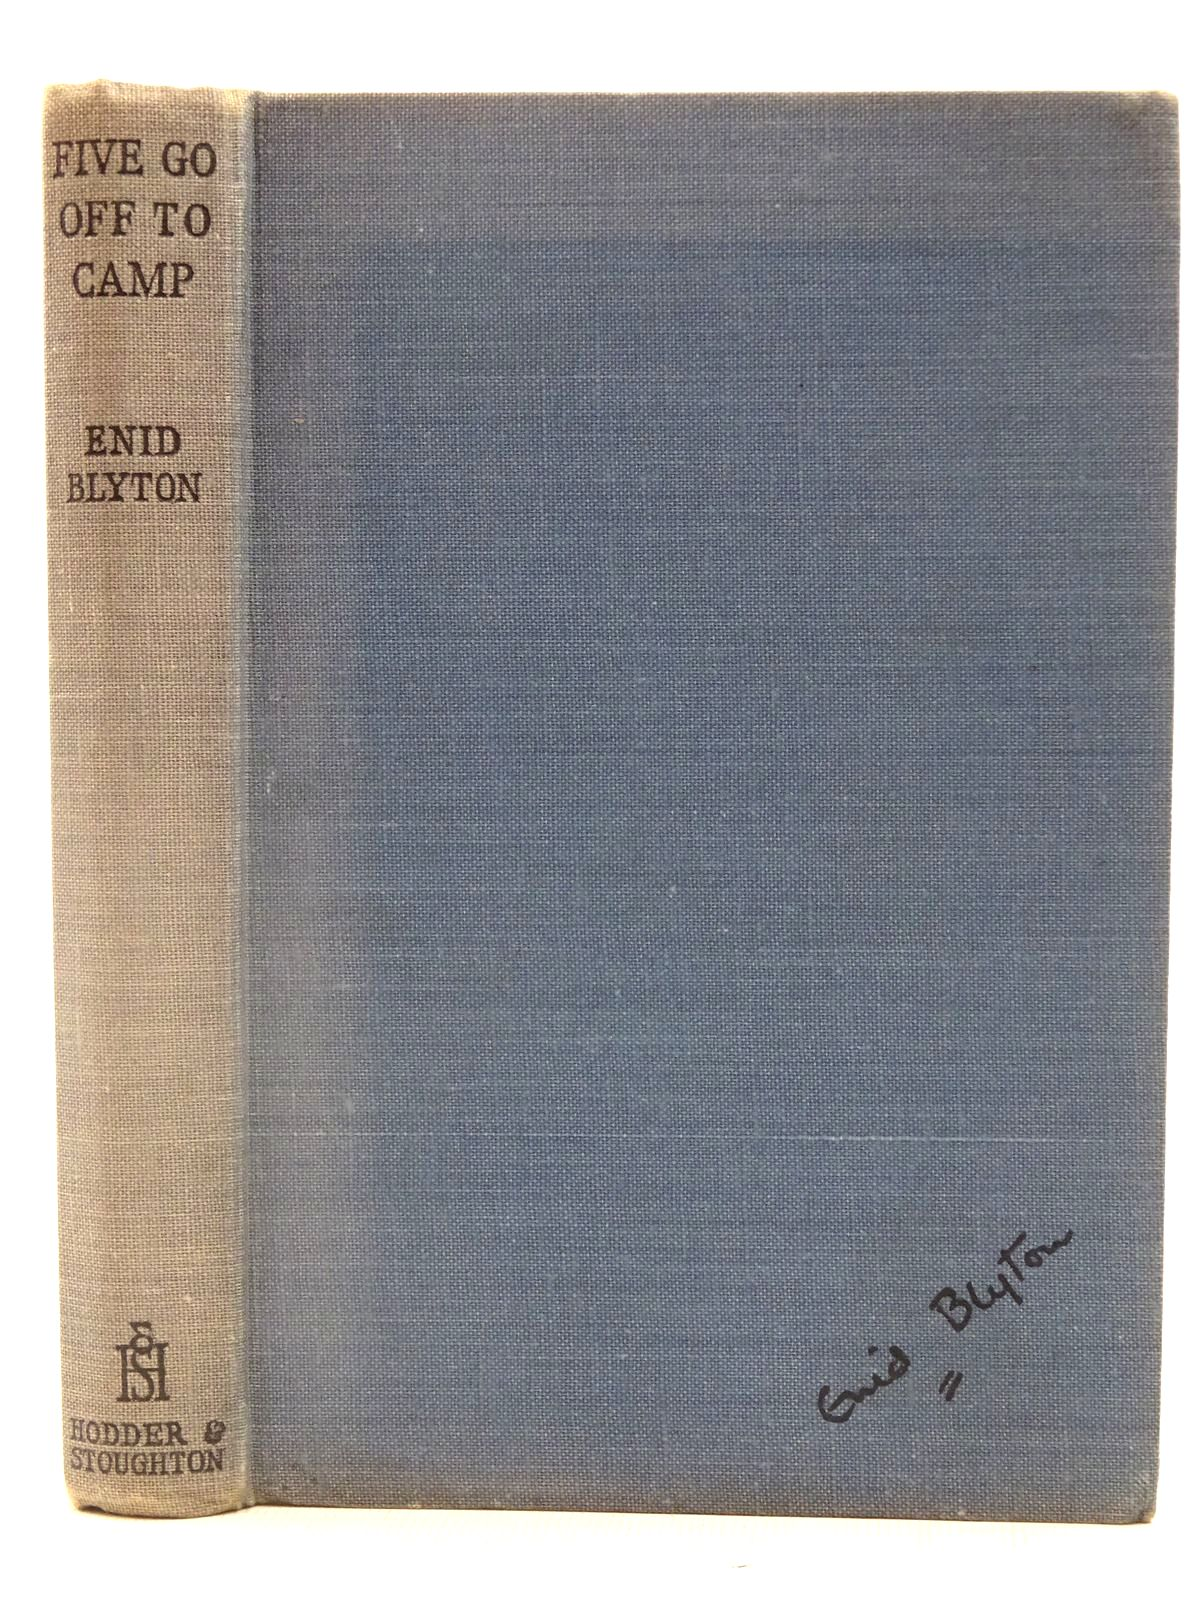 Photo of FIVE GO OFF TO CAMP written by Blyton, Enid illustrated by Soper, Eileen published by Hodder & Stoughton (STOCK CODE: 2128181)  for sale by Stella & Rose's Books